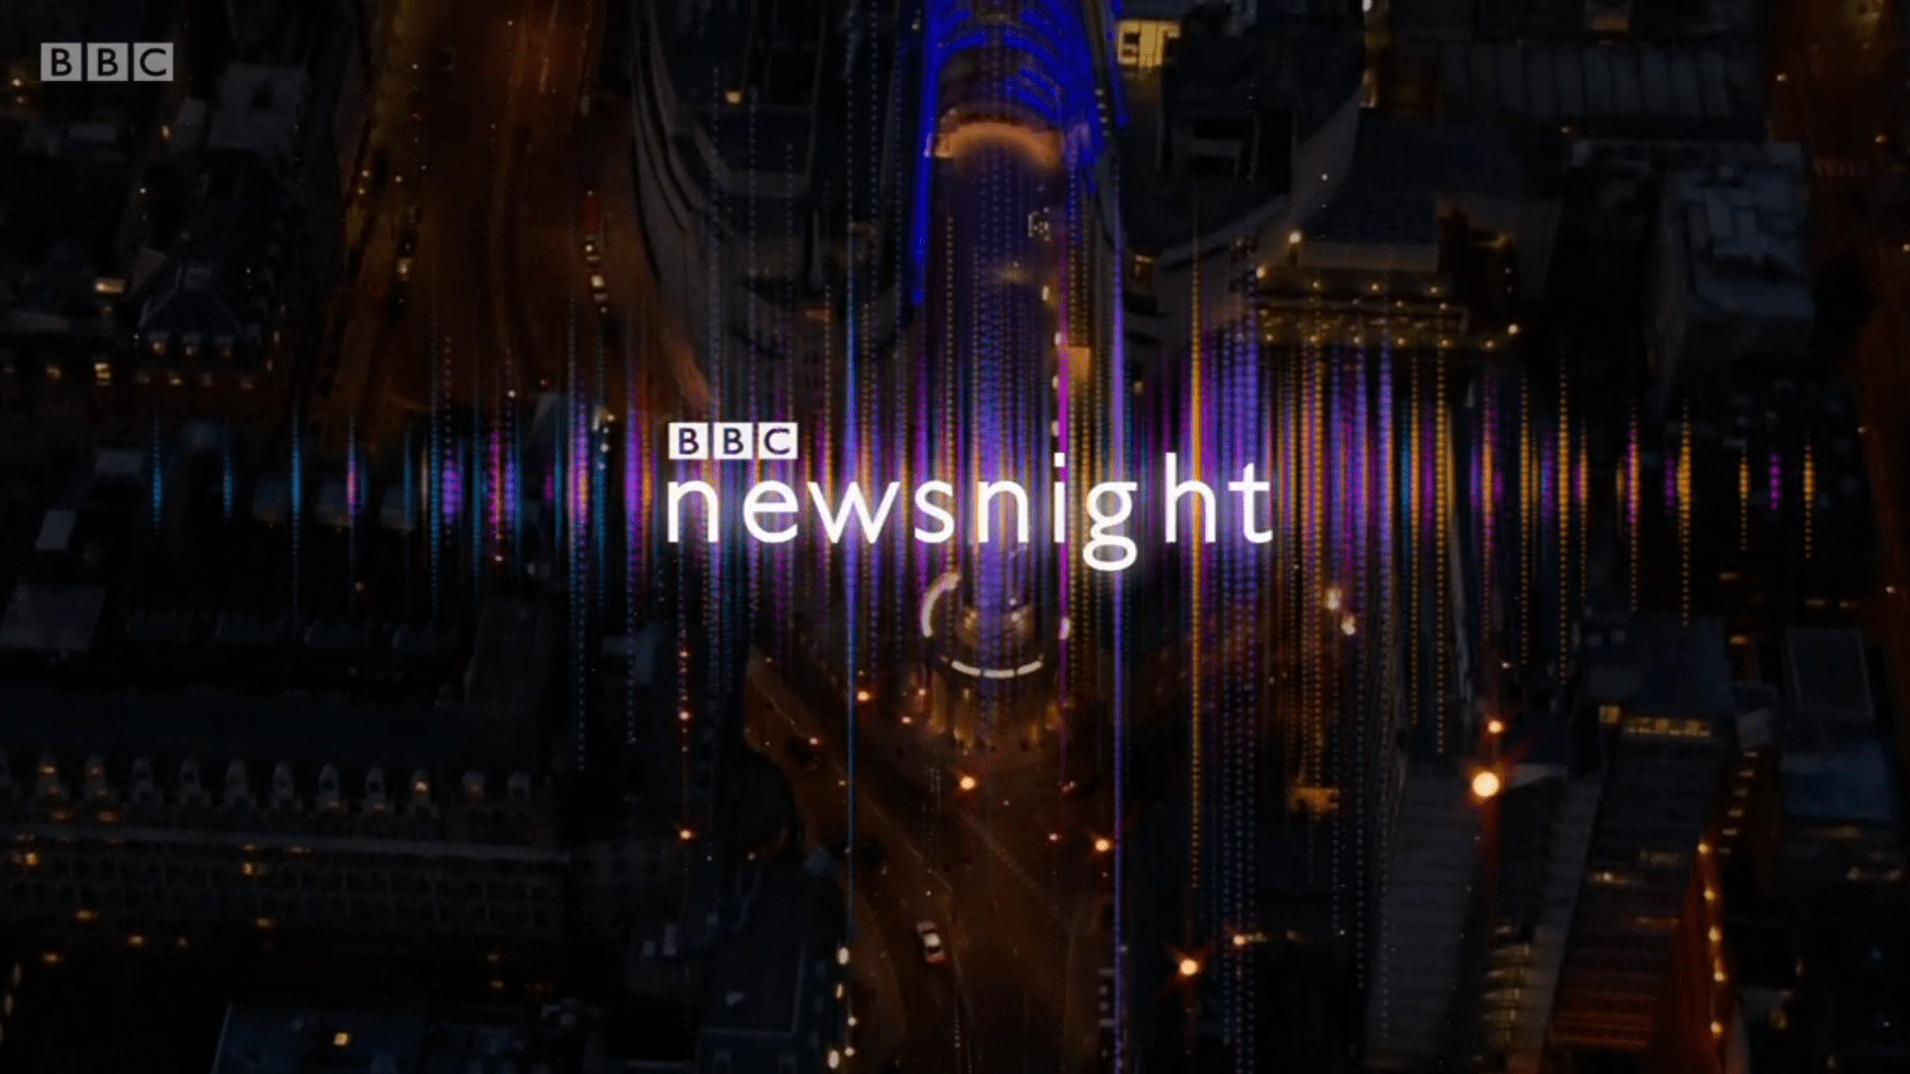 PICTURED: BBC Newsnight opening titles.